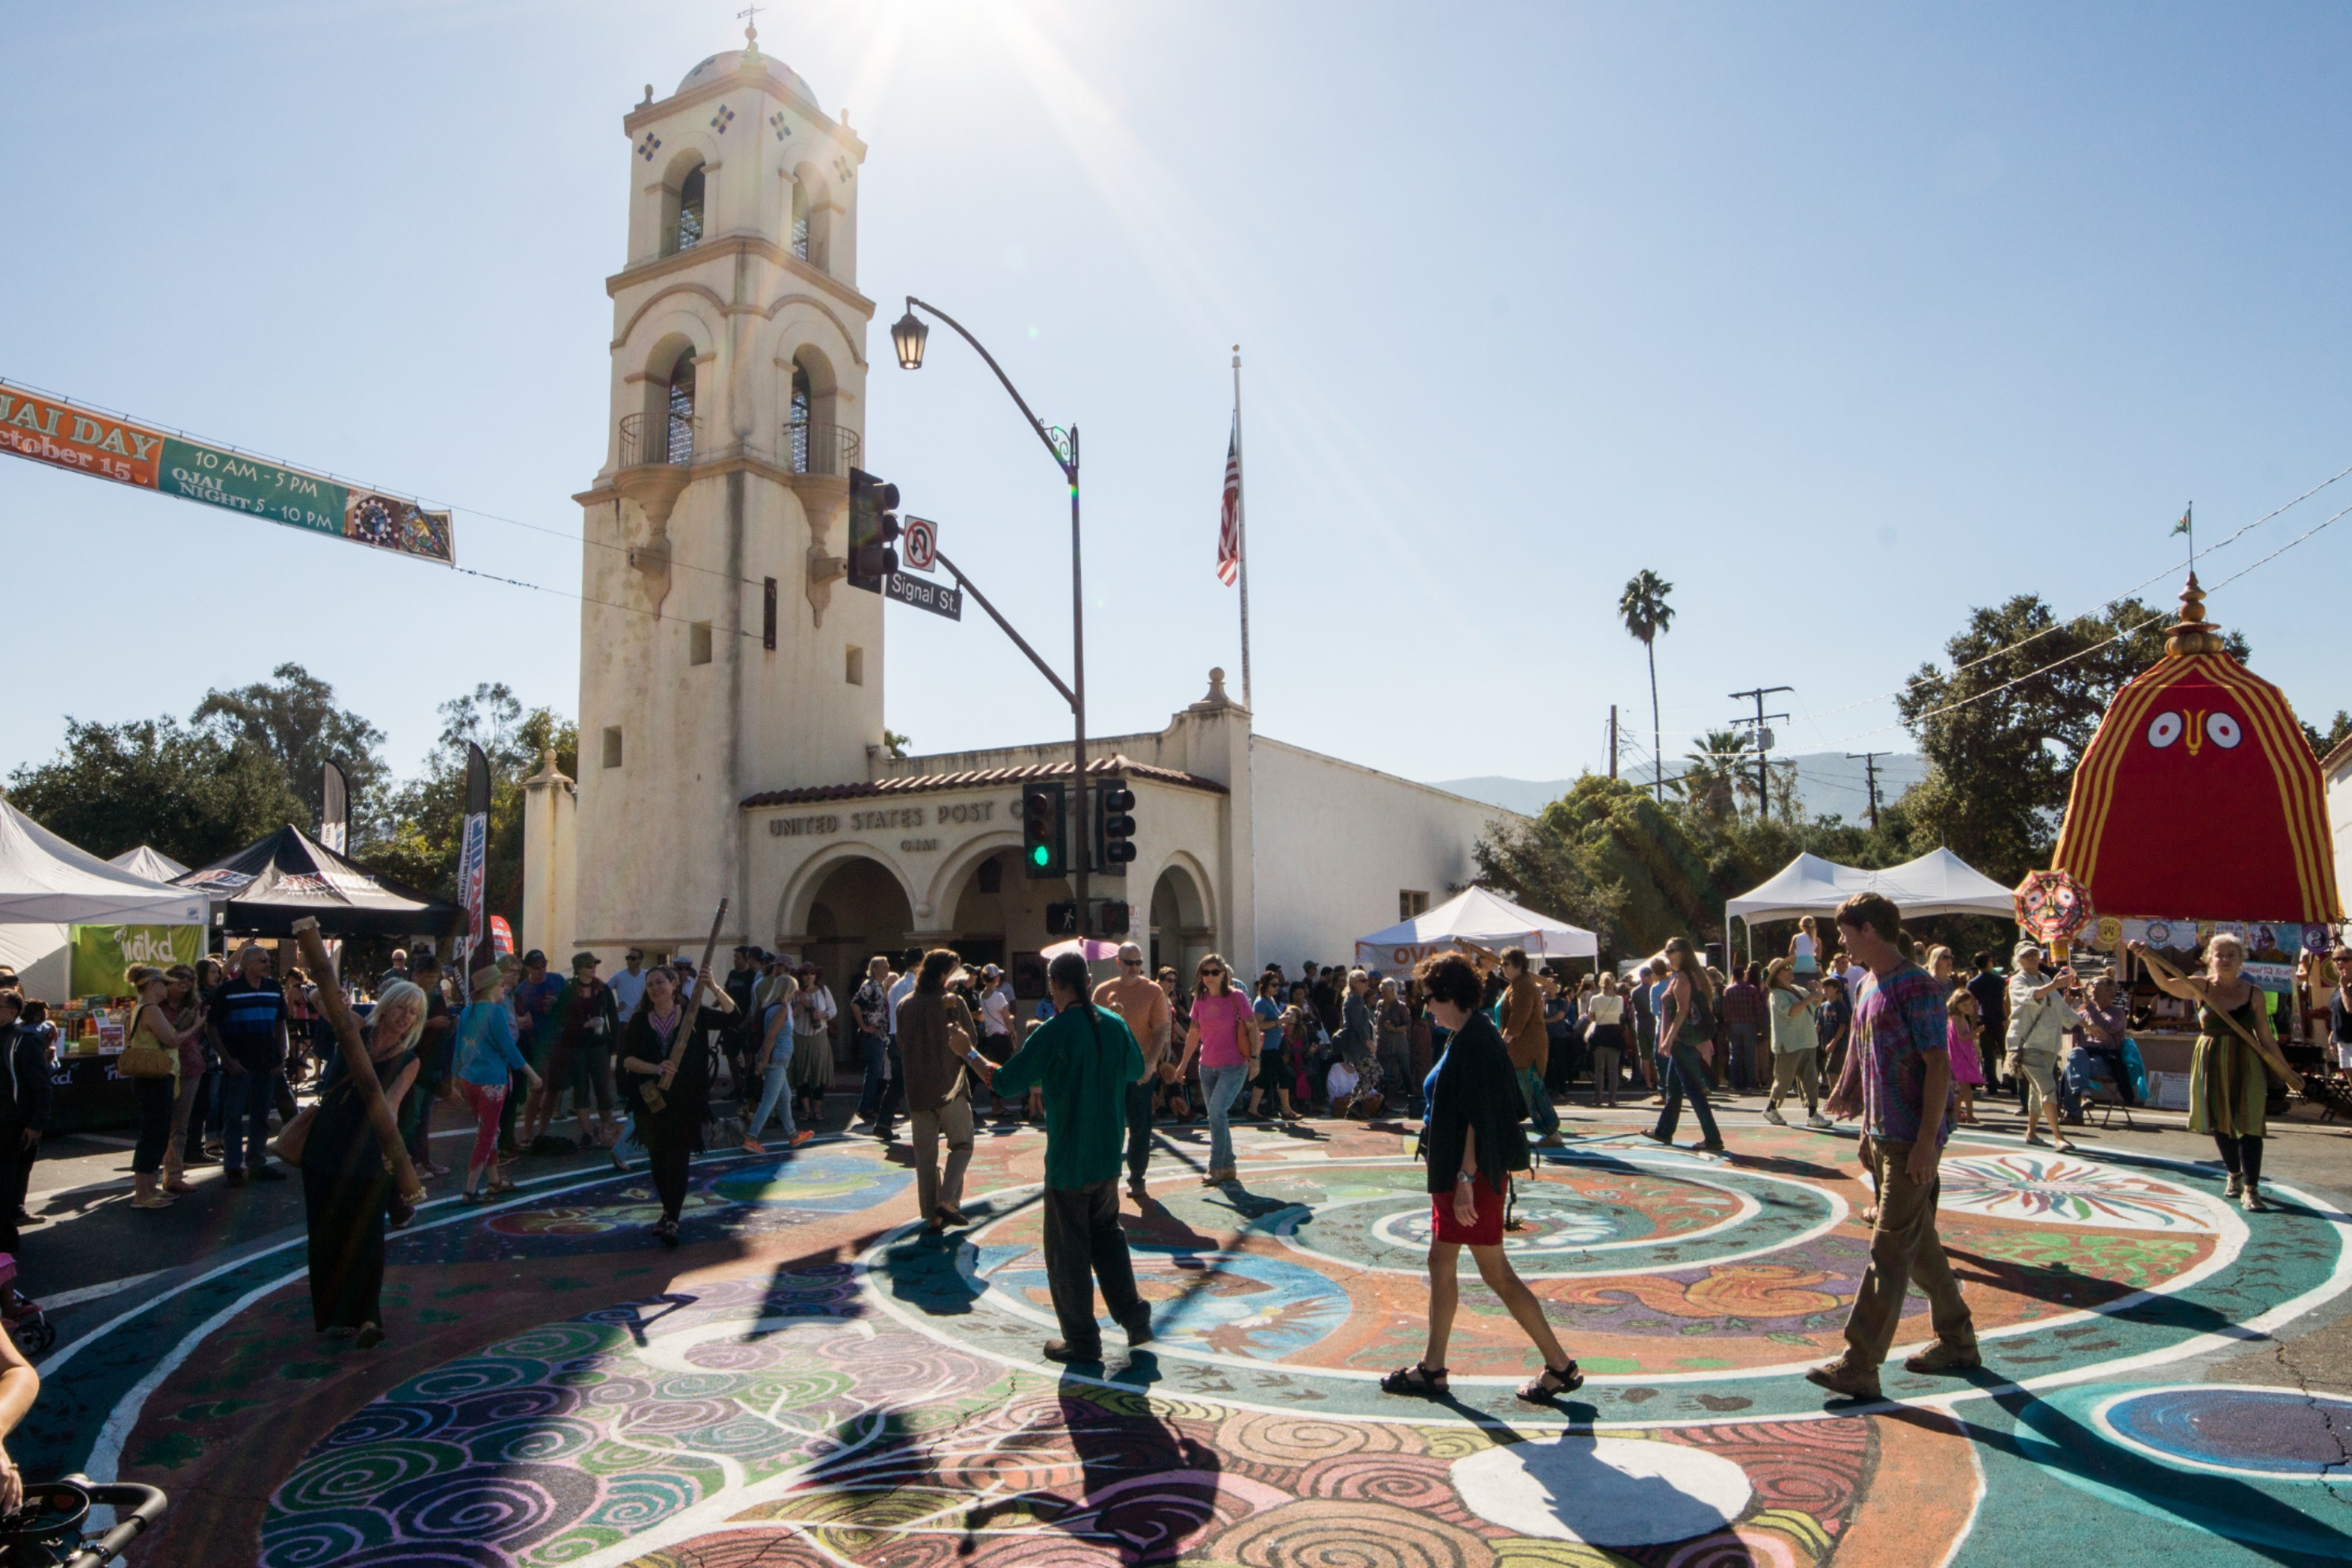 Ojai Day 2018 is no longer accepting vendor applications